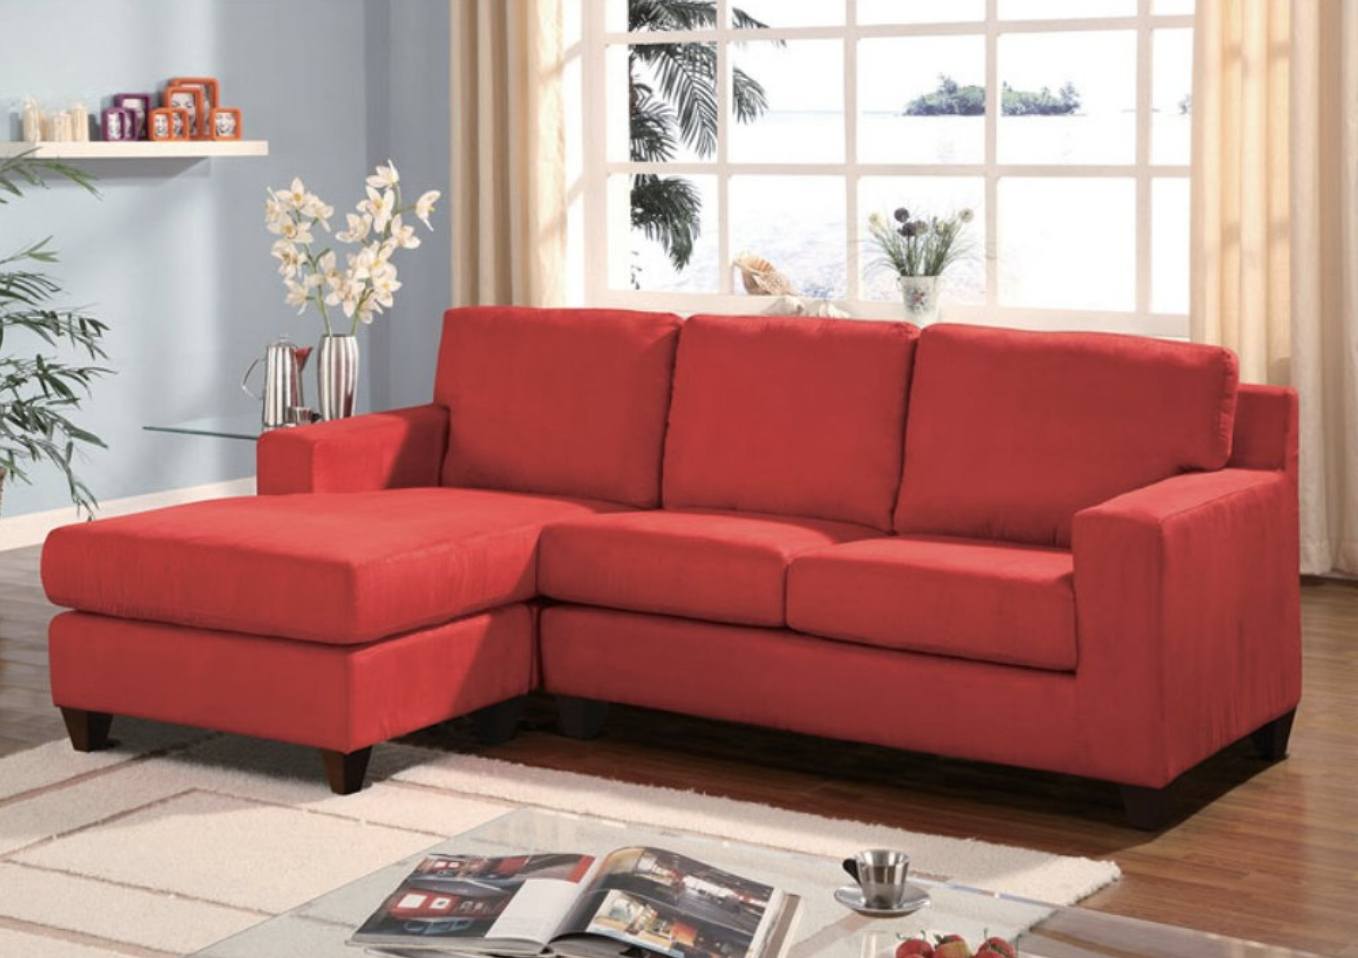 Red Leather Sectionals With Ottoman With Well Known 75 Modern Sectional Sofas For Small Spaces (2018) (View 15 of 20)